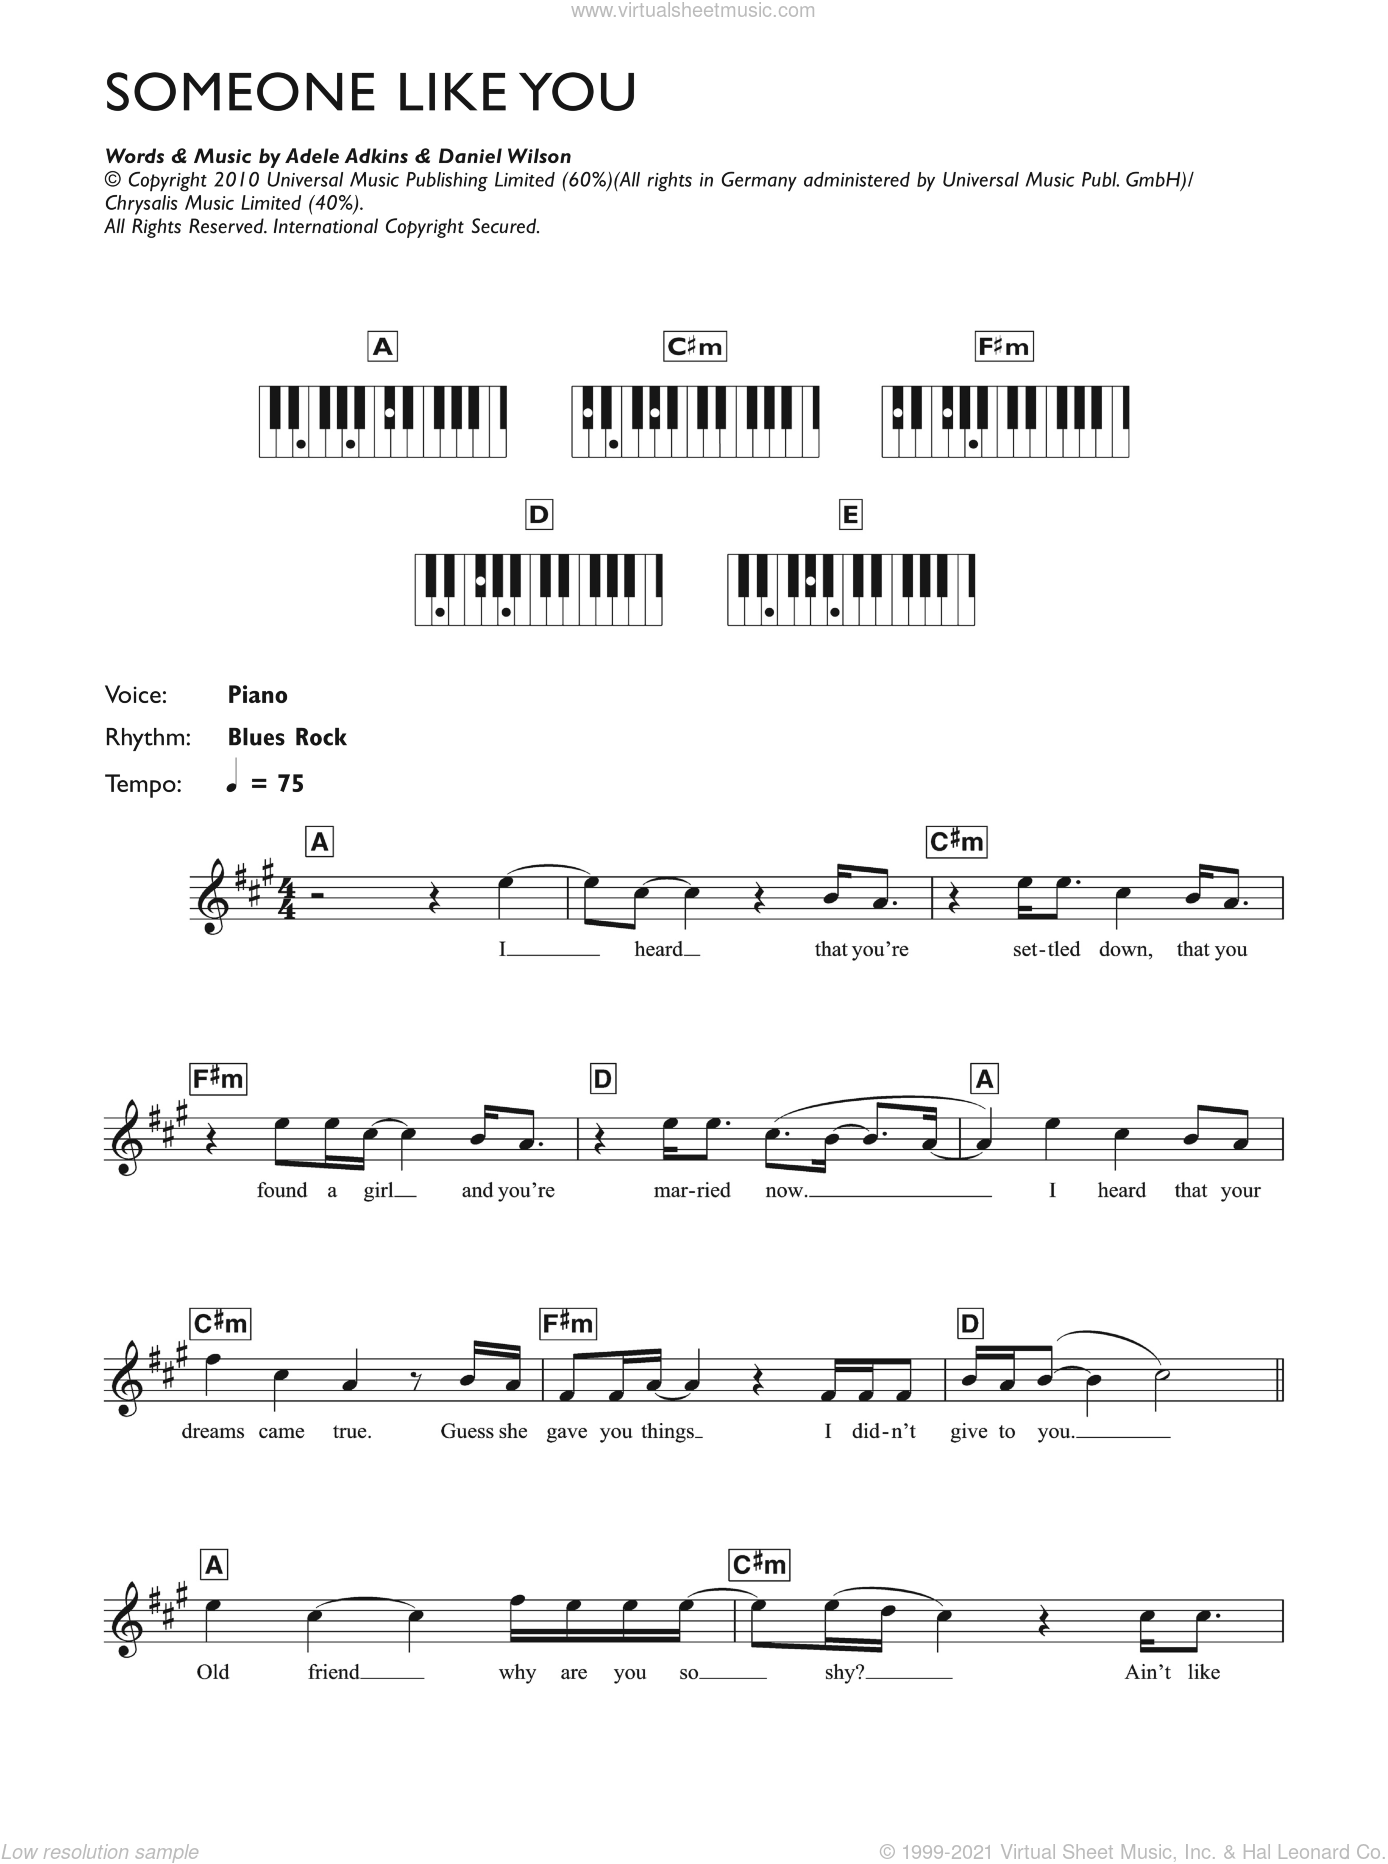 Someone Like You sheet music for piano solo (chords, lyrics, melody) by Dan Wilson and Adele. Score Image Preview.